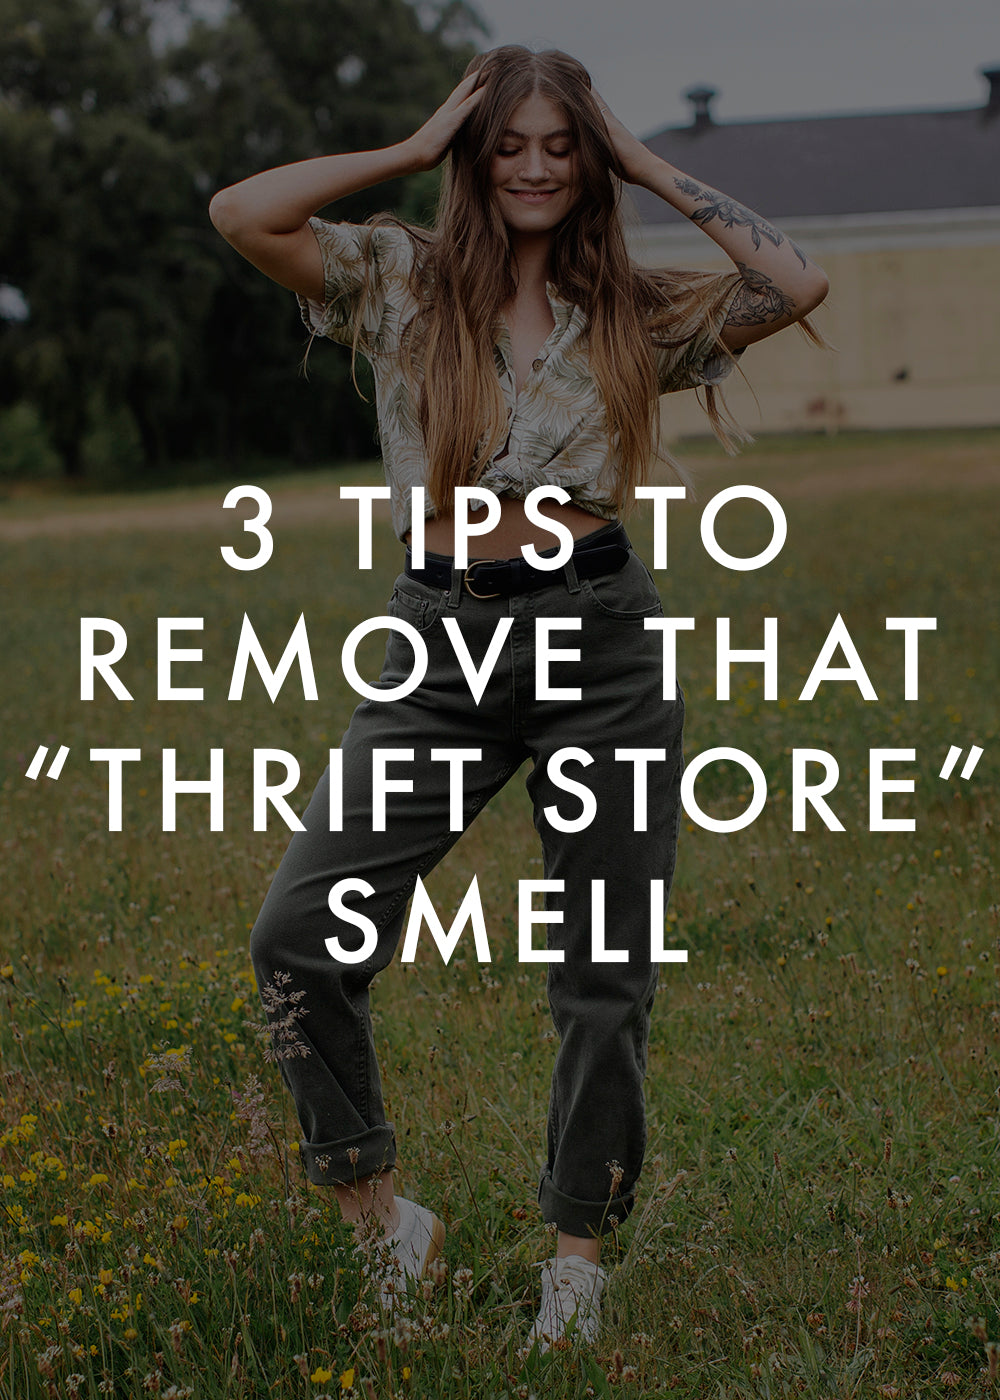 3 tips to remove that thrift store smell